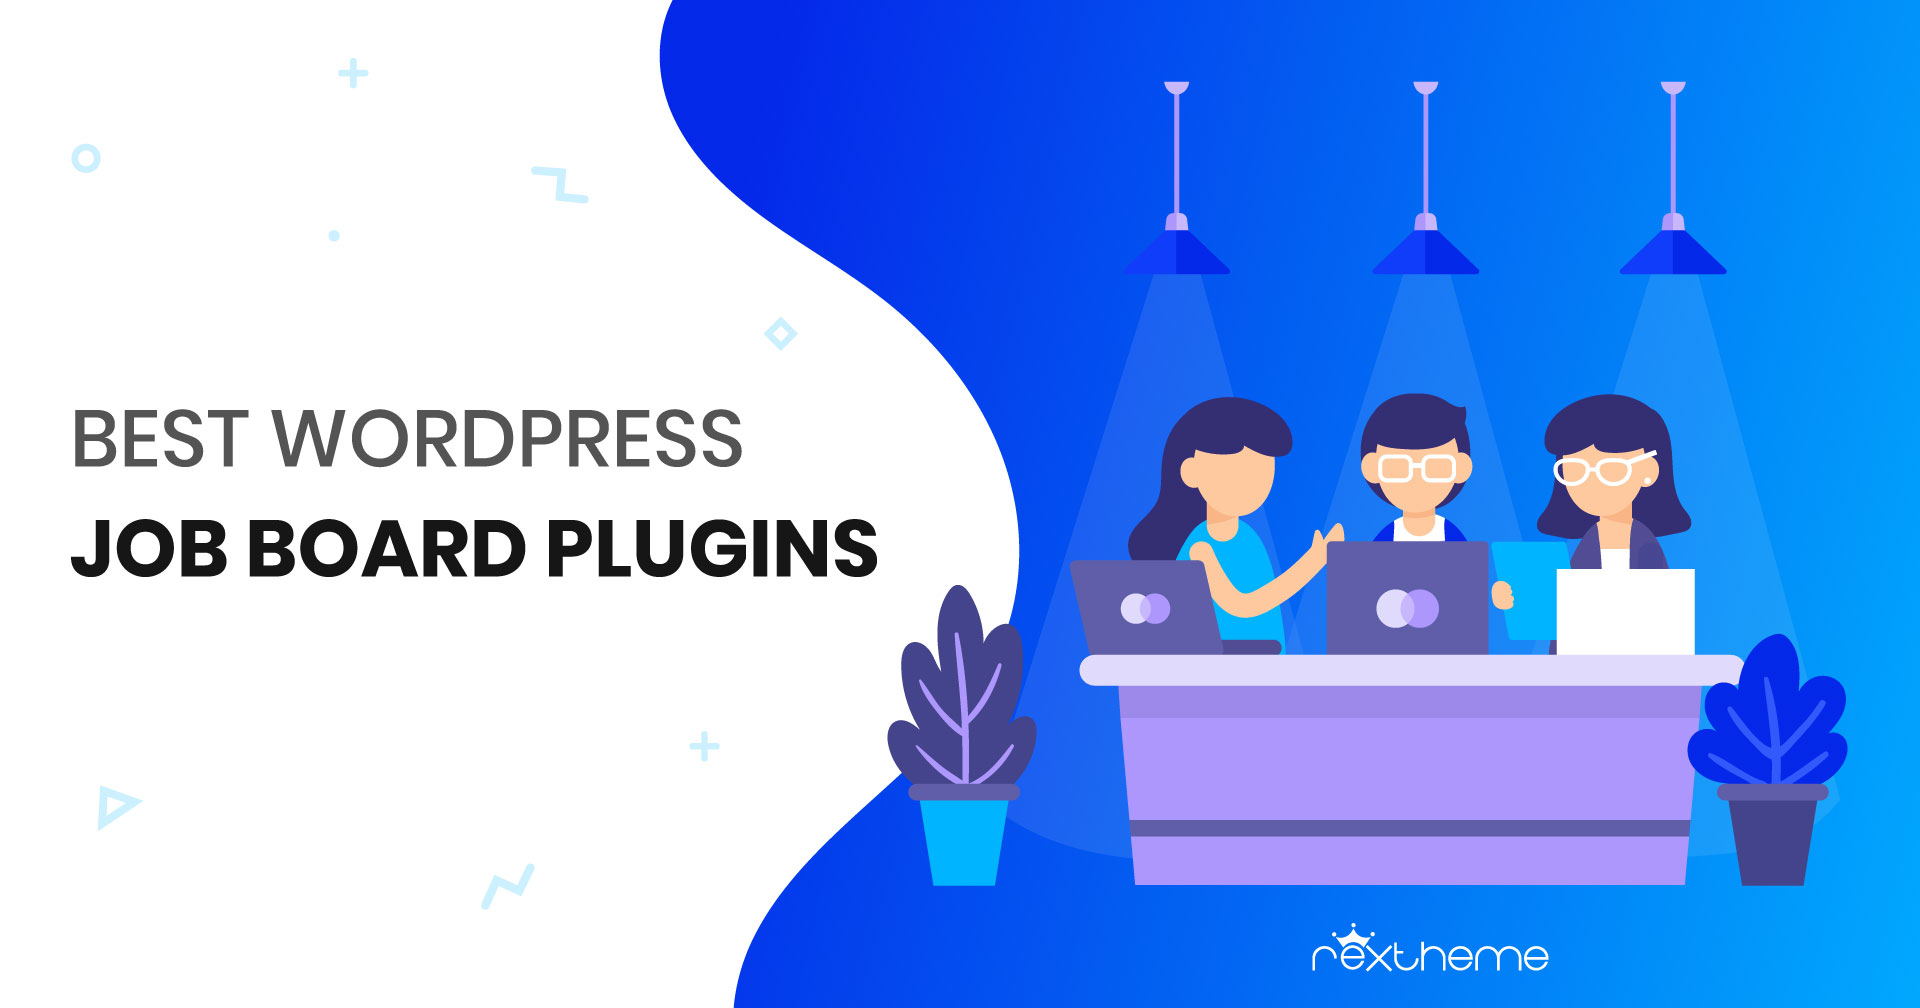 3 Best WordPress Job Board Plugins [2019]